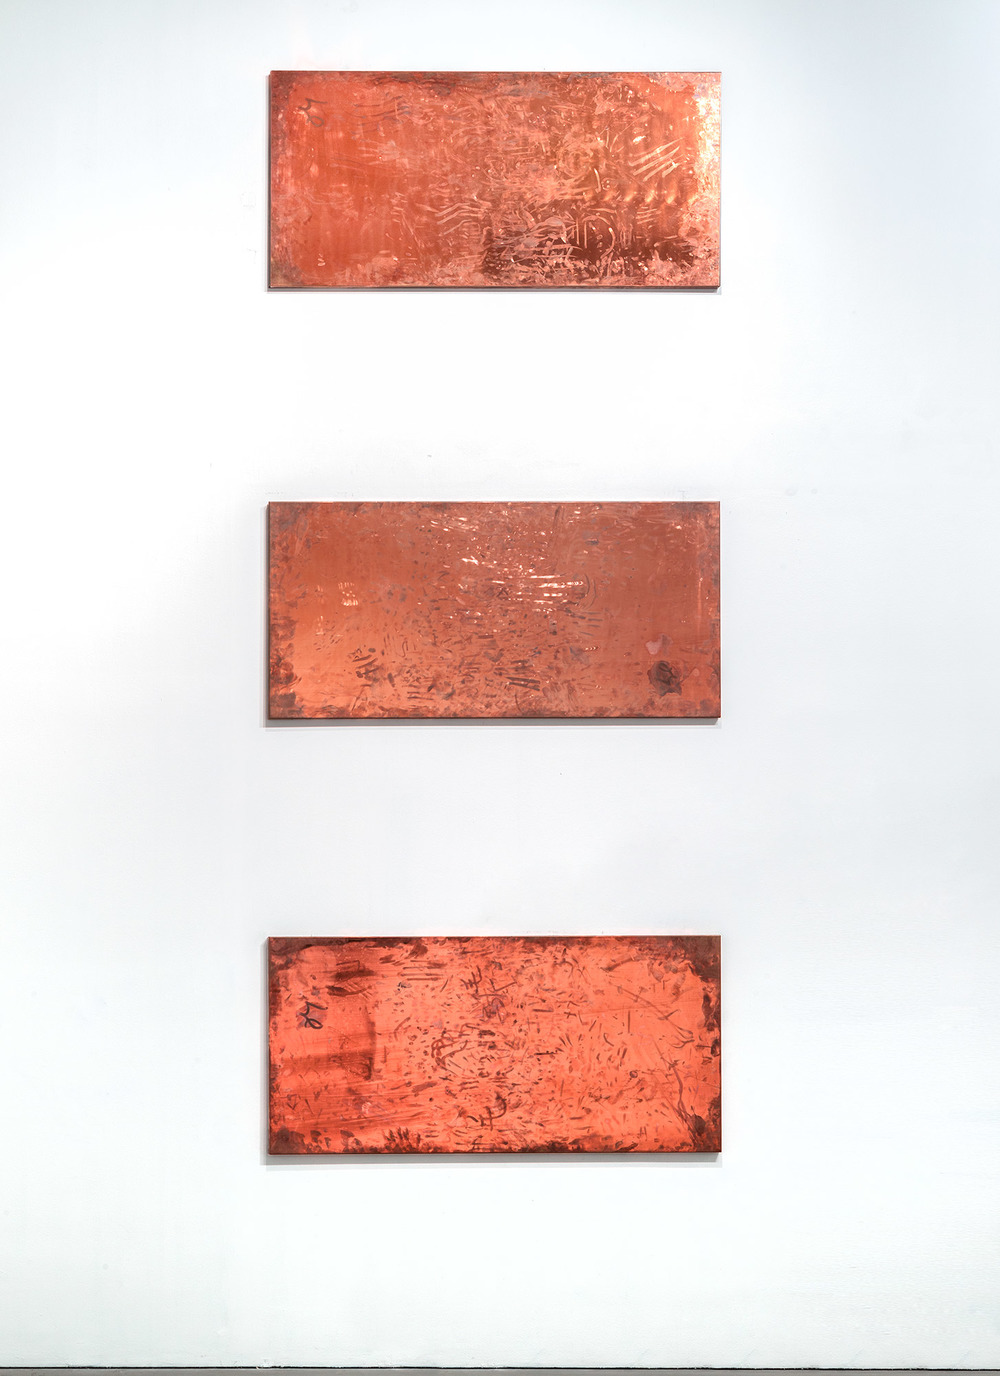 Copper Surrogates (September 20–23/November 21–23, 2011, Beijing, China, June 13–18/November 21, 2012Los Angeles, California, November 29–December 3, 2012, Miami Beach, Florida)    2011   Polished copper  35 1/2 x 74 3/4 x 1 1/2 inches each   Surrogates (Full Sheet, Art Handling), 2011–